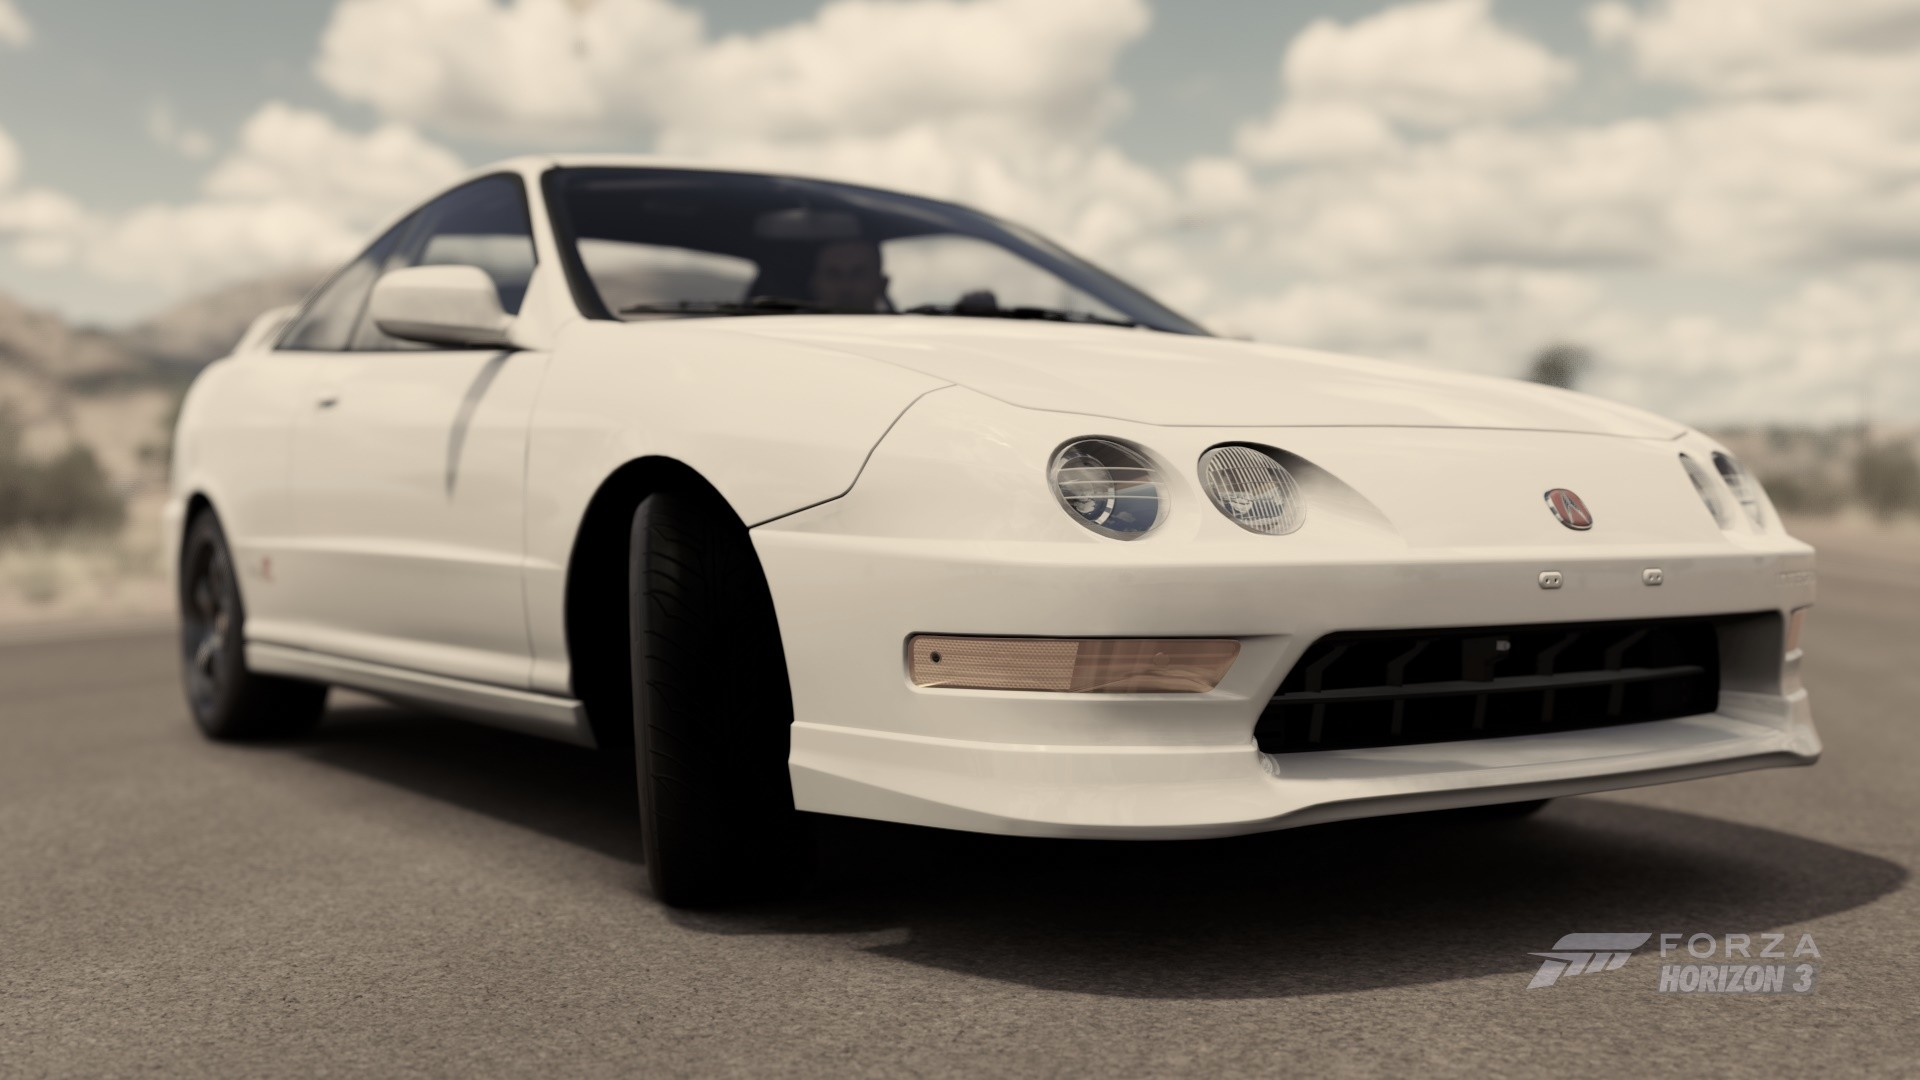 Popular Honda Integra Type R Wallpaper X For Samsung Galaxy on Acura Integra Type